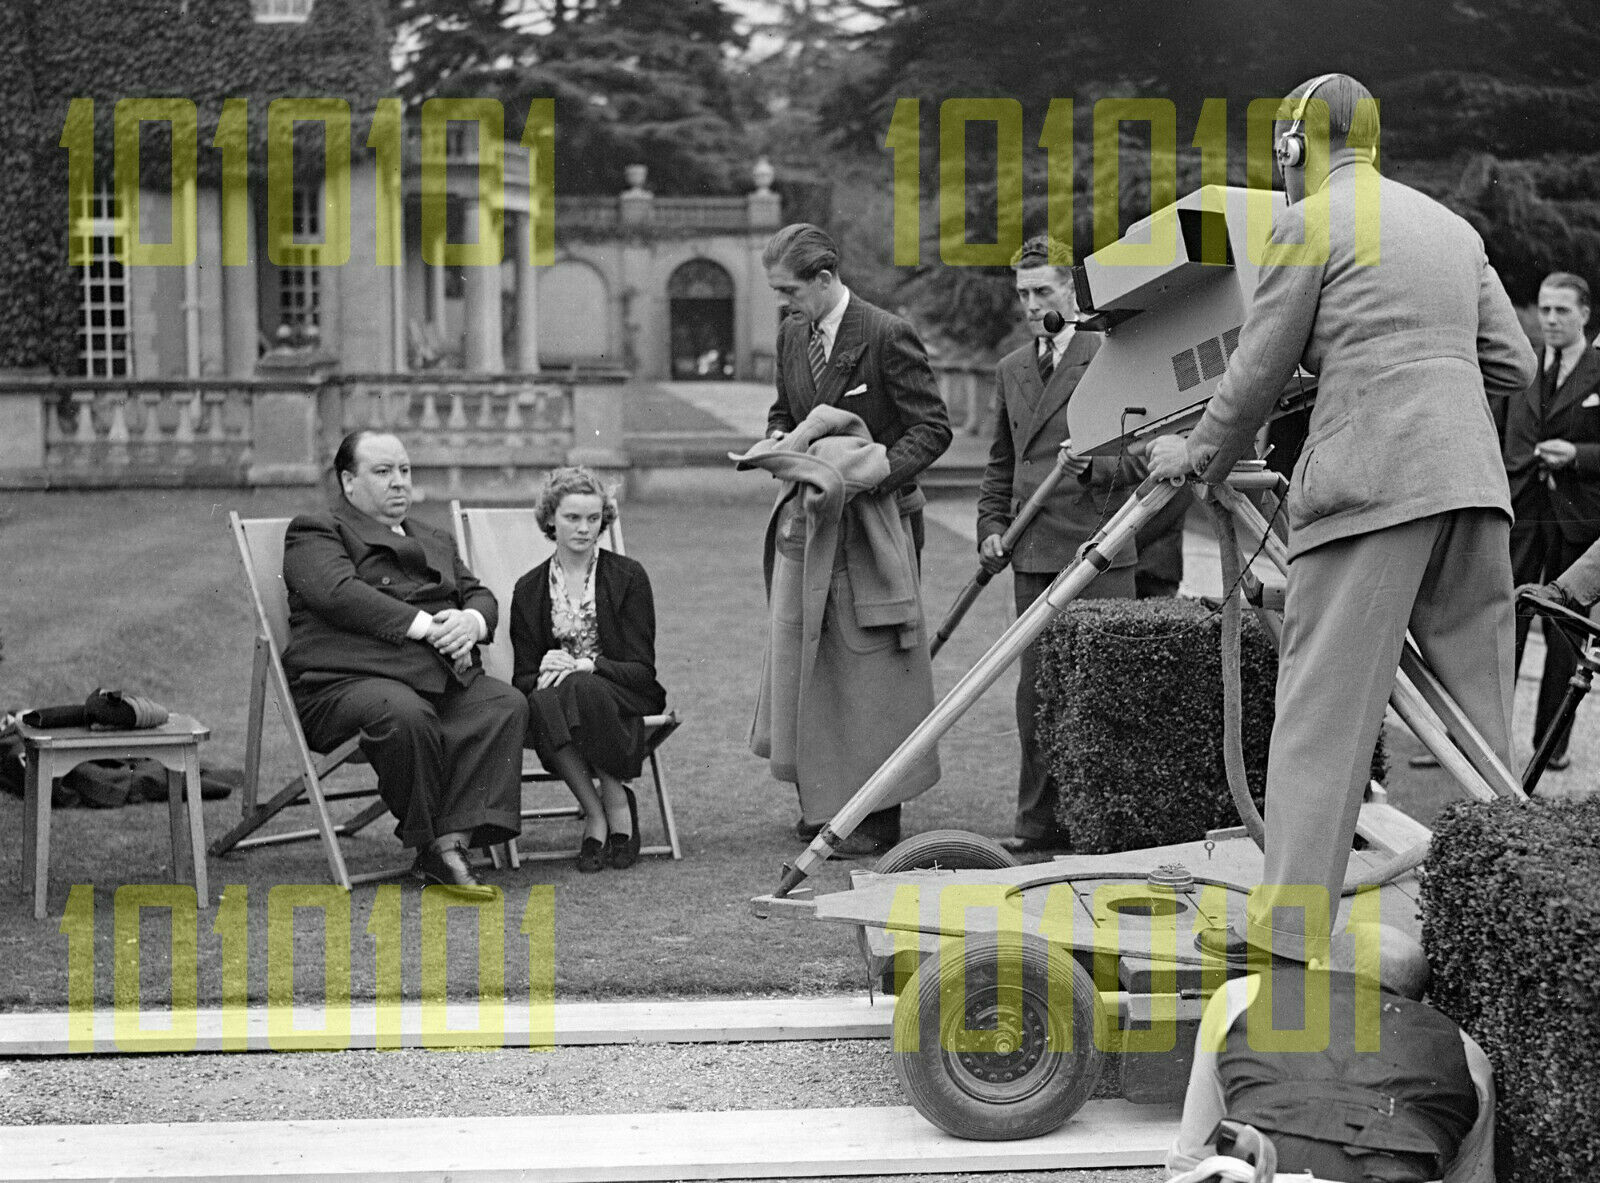 Alfred Hitchcock and Nova Pilbeam being interviewed by Leslie Mitchell (holding coat) in the gardens of Pinewood Studios on 5 October 1937 for Round the Film Studios BBC short